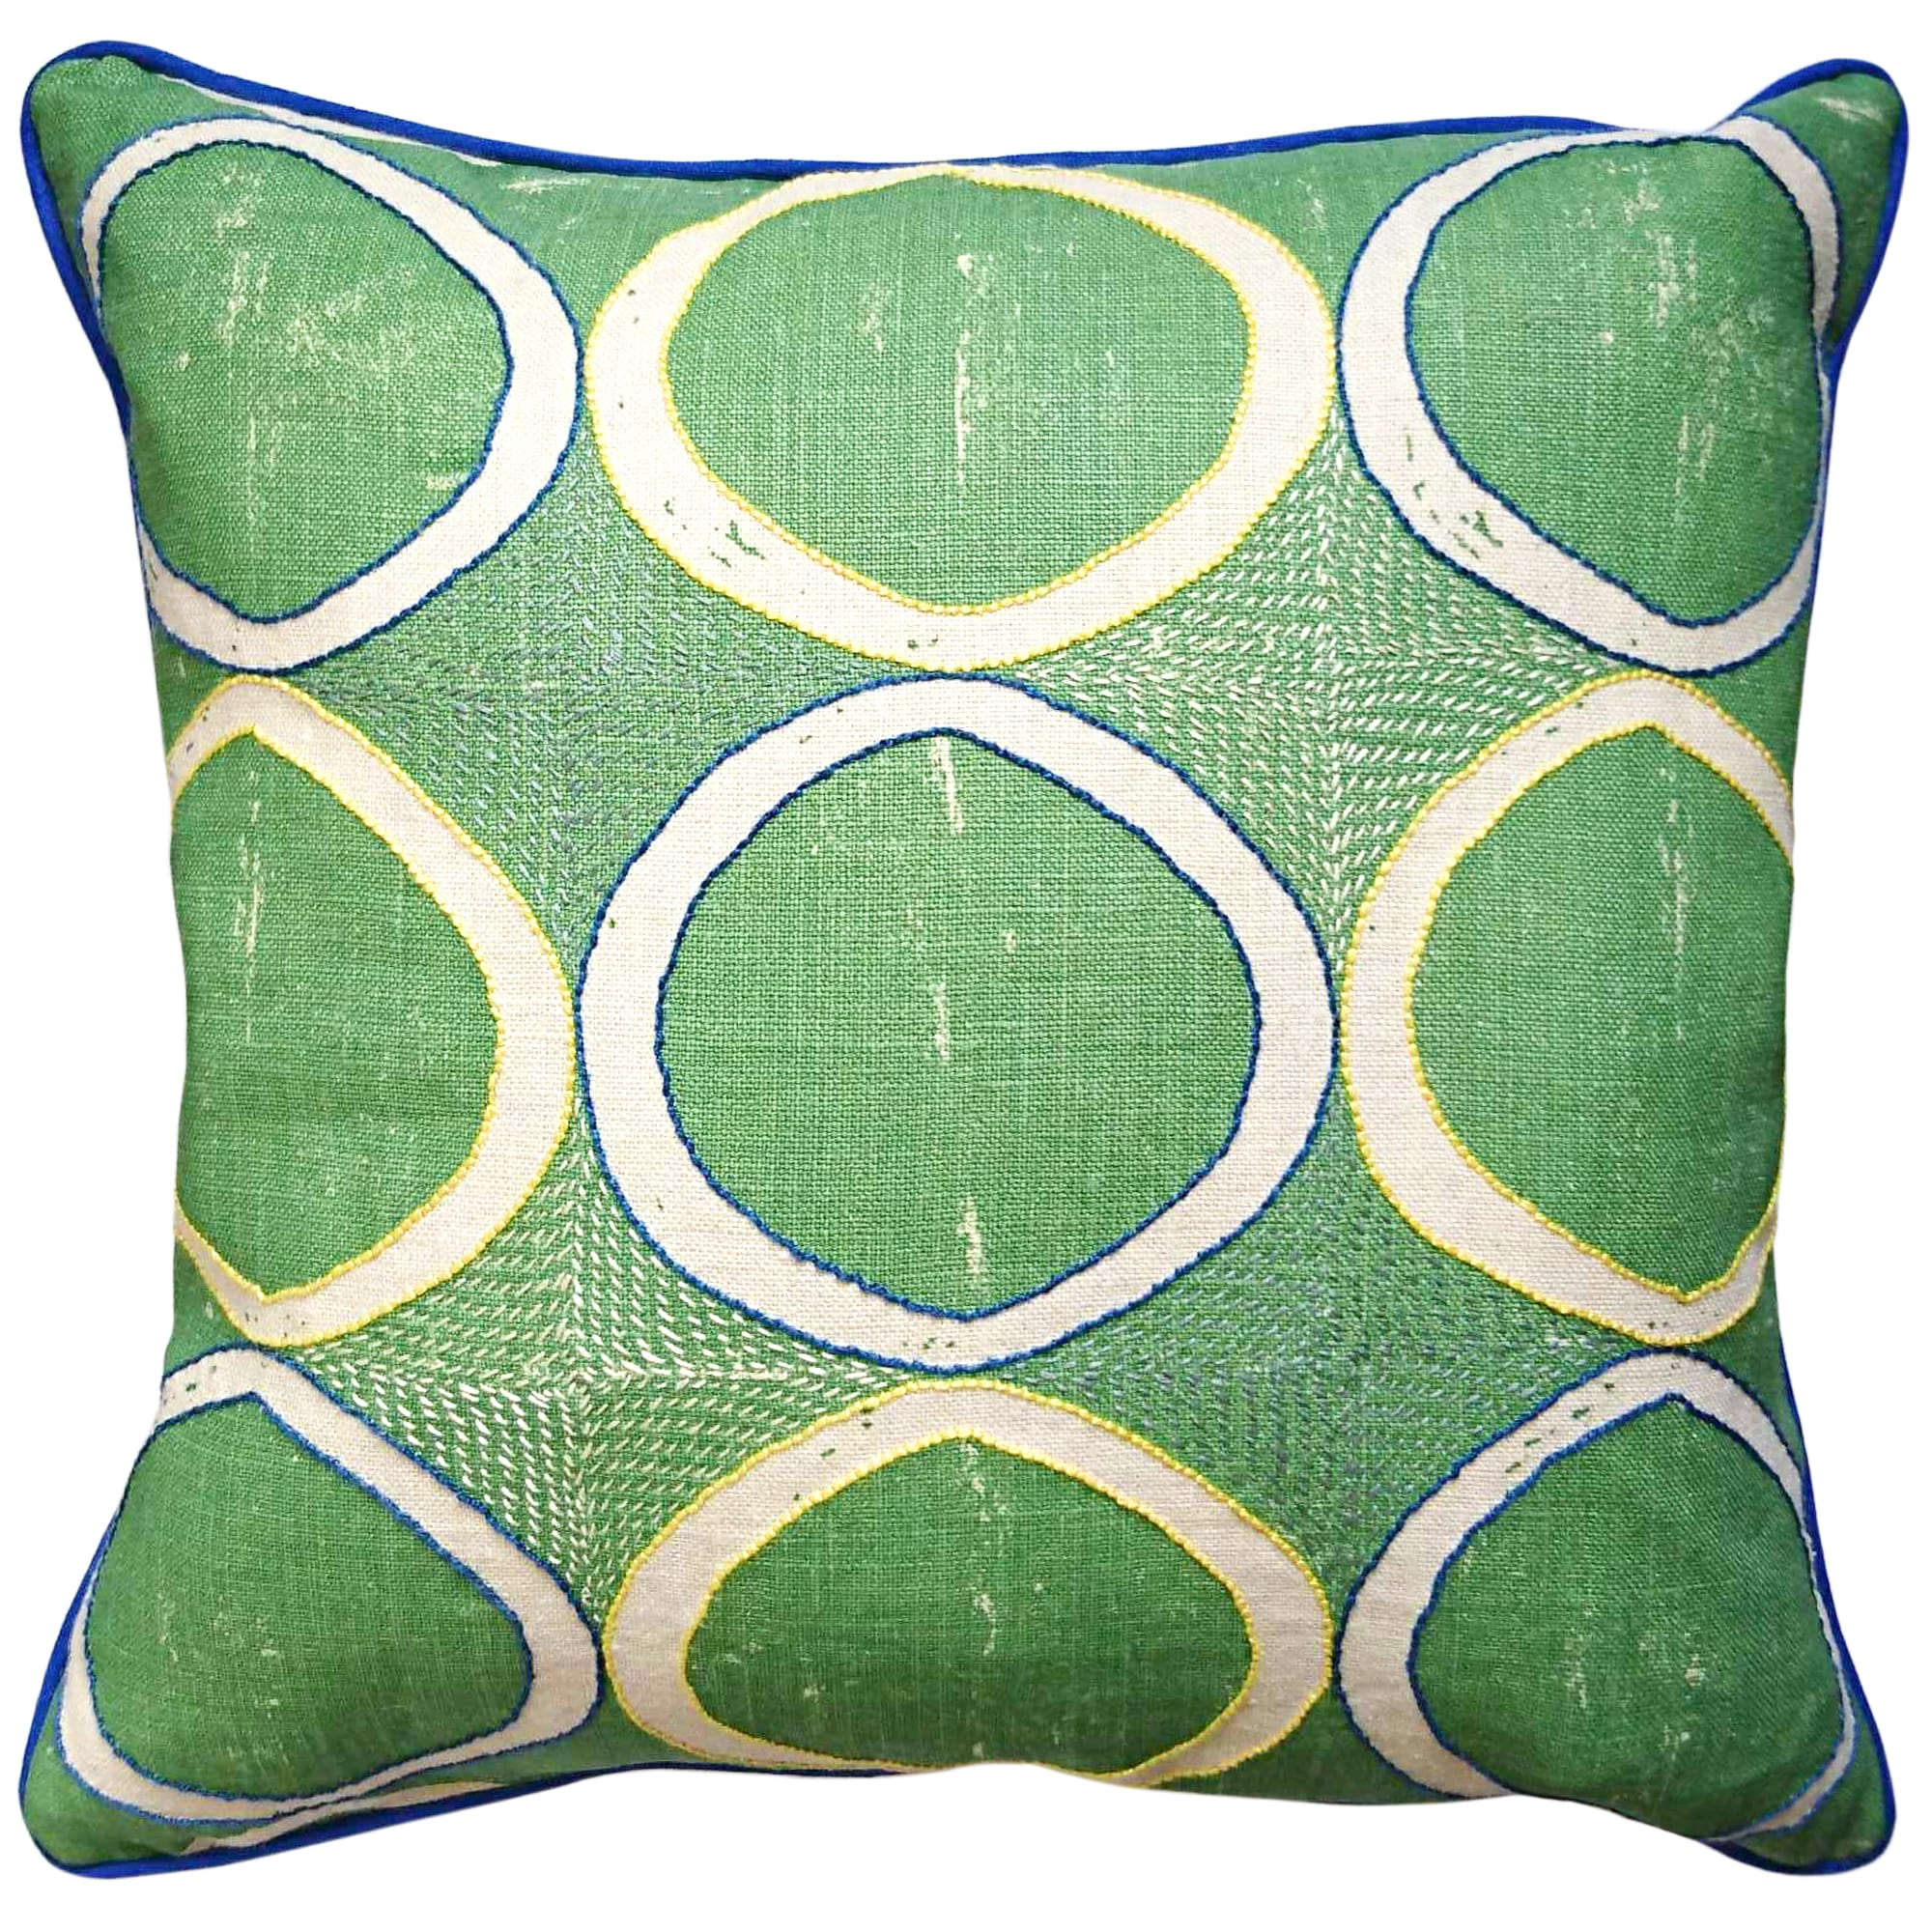 Fine Cell Work Hand-Embroidered Blithfield Kit Kemp Peggy Angus Circles Linen Cushion Green Handmade in Prison